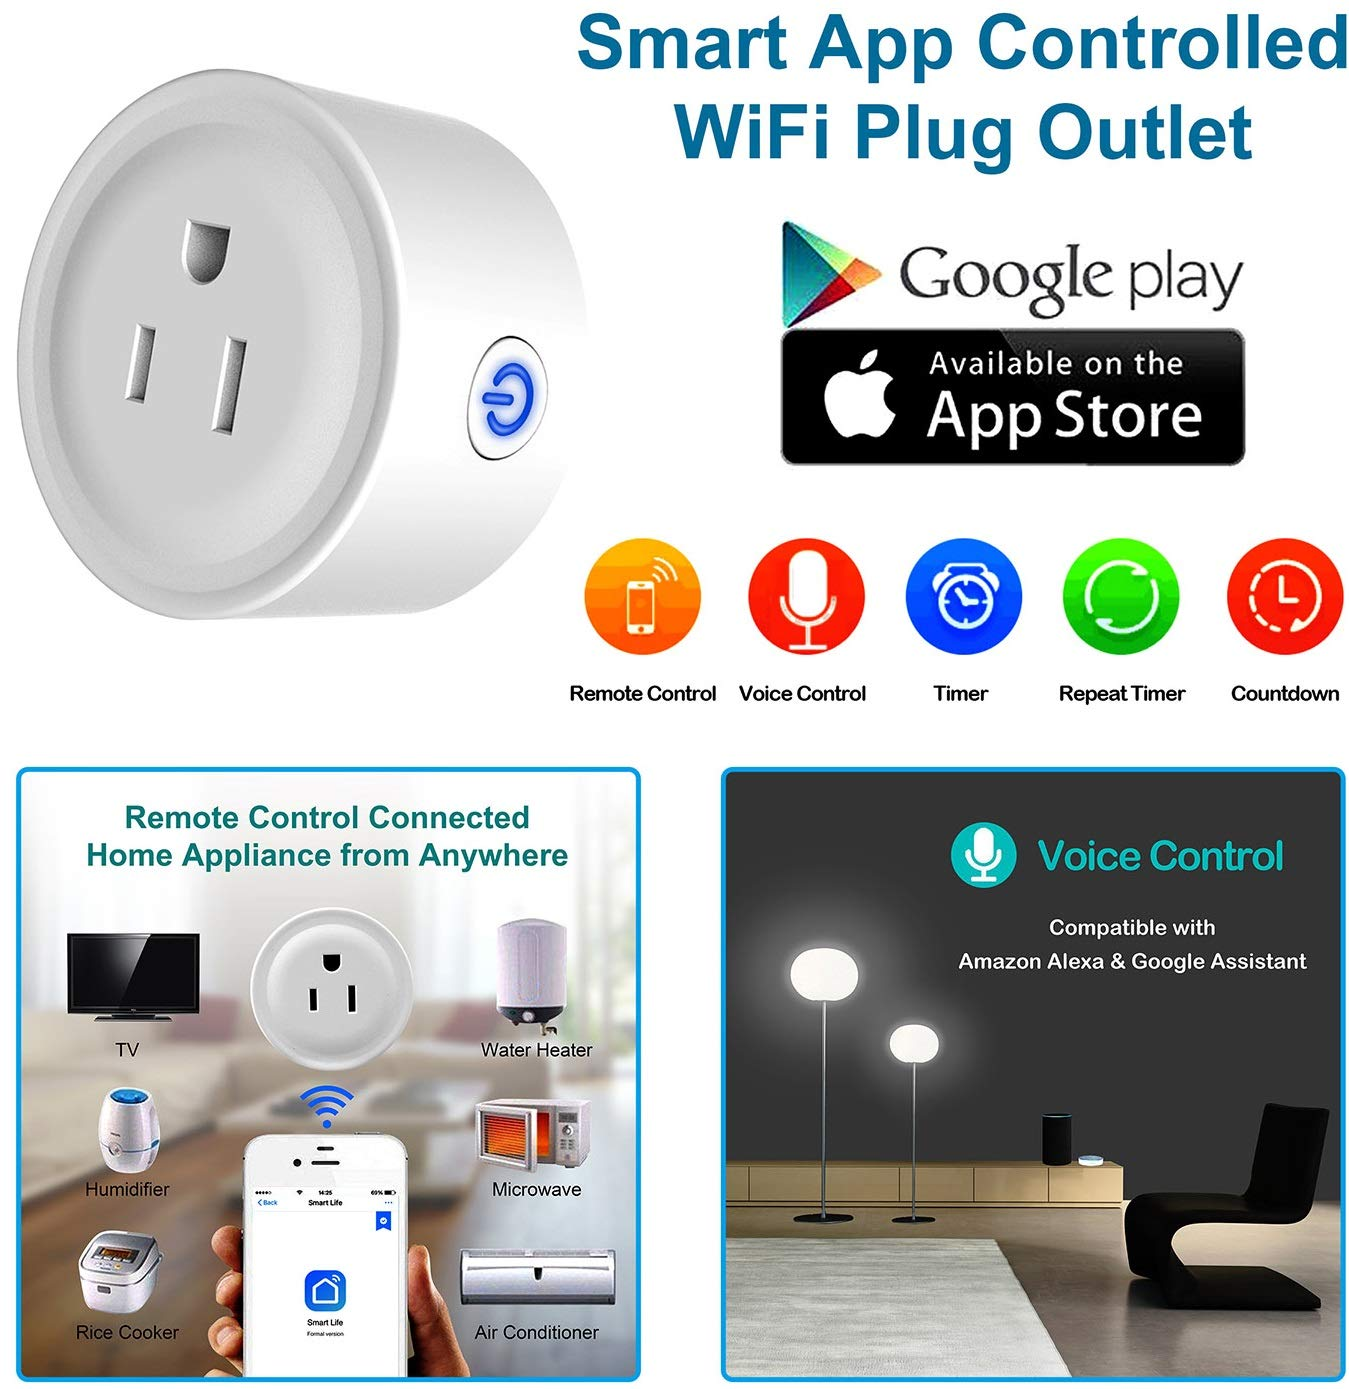 GPCT Smart App Controlled WiFi Plug Outlet. Works W/Alexa/Google Home/IFTTT, Remote Control To Any Connected Home Appliance, No HUB Required, Timer Function, Voice Control Smart Socket- iOS/Android